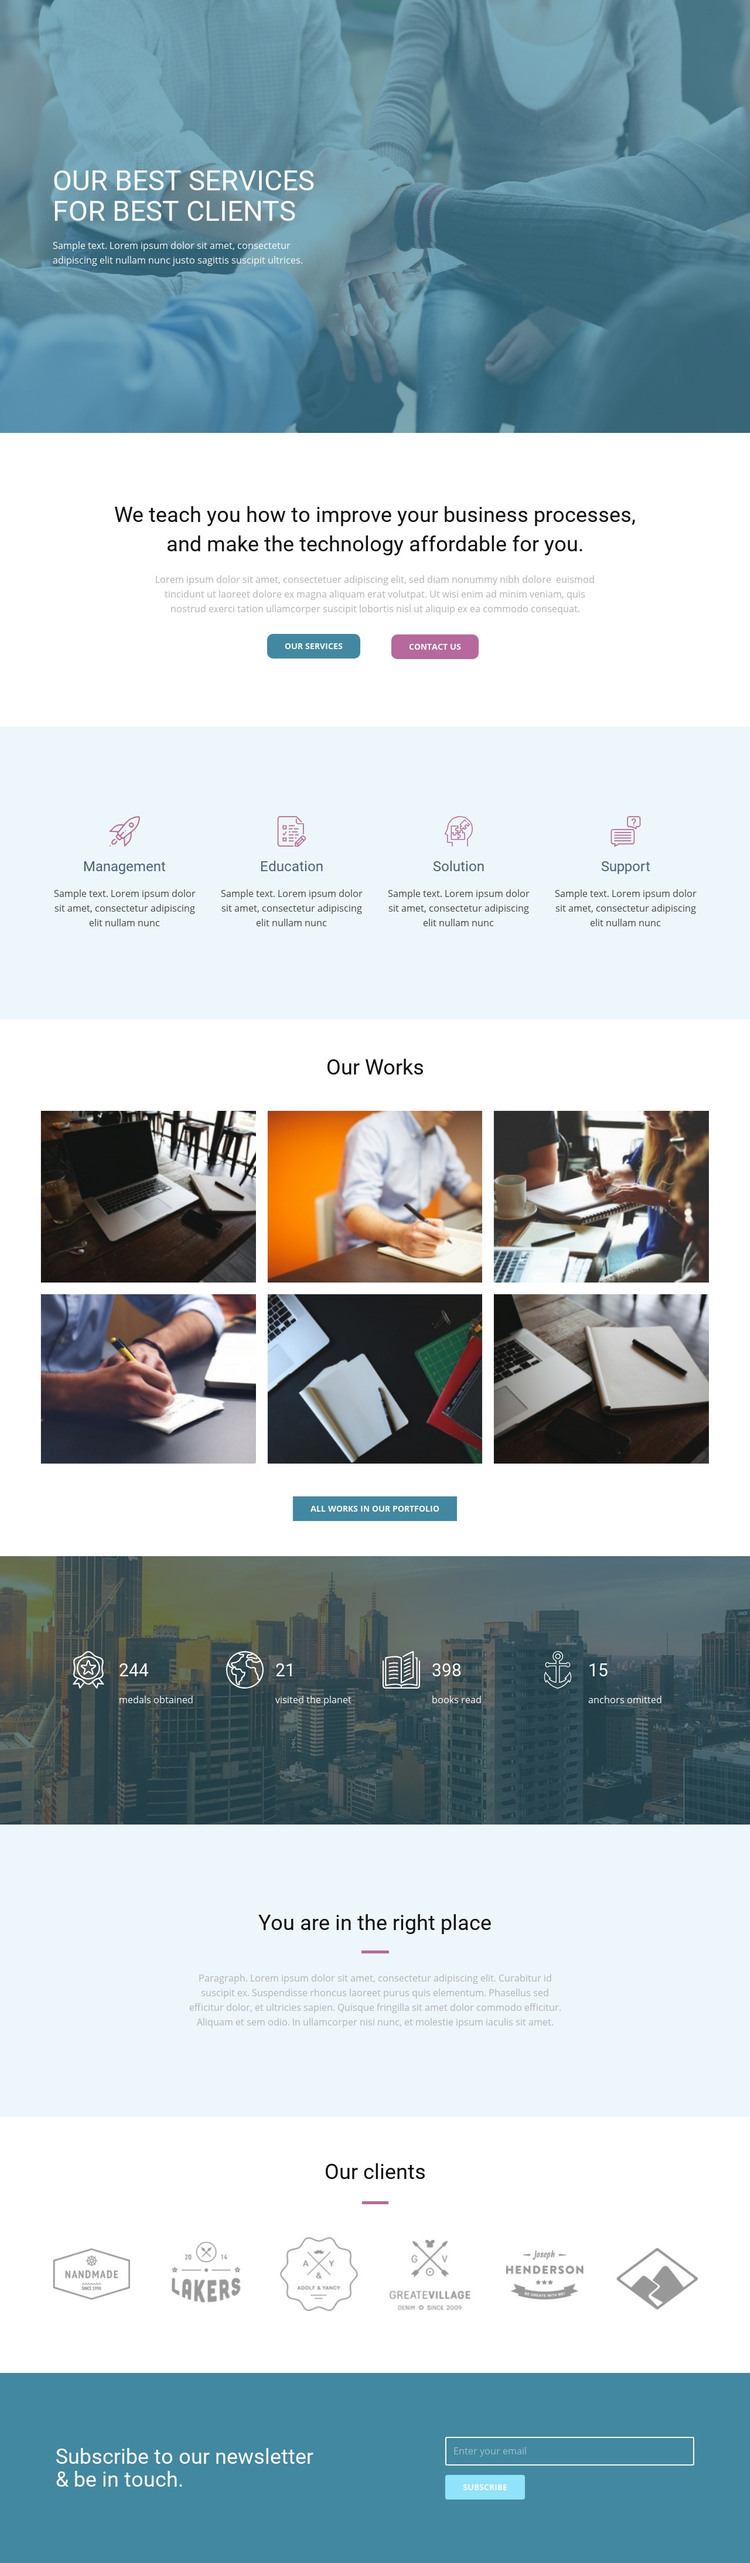 Best services for clients Homepage Design